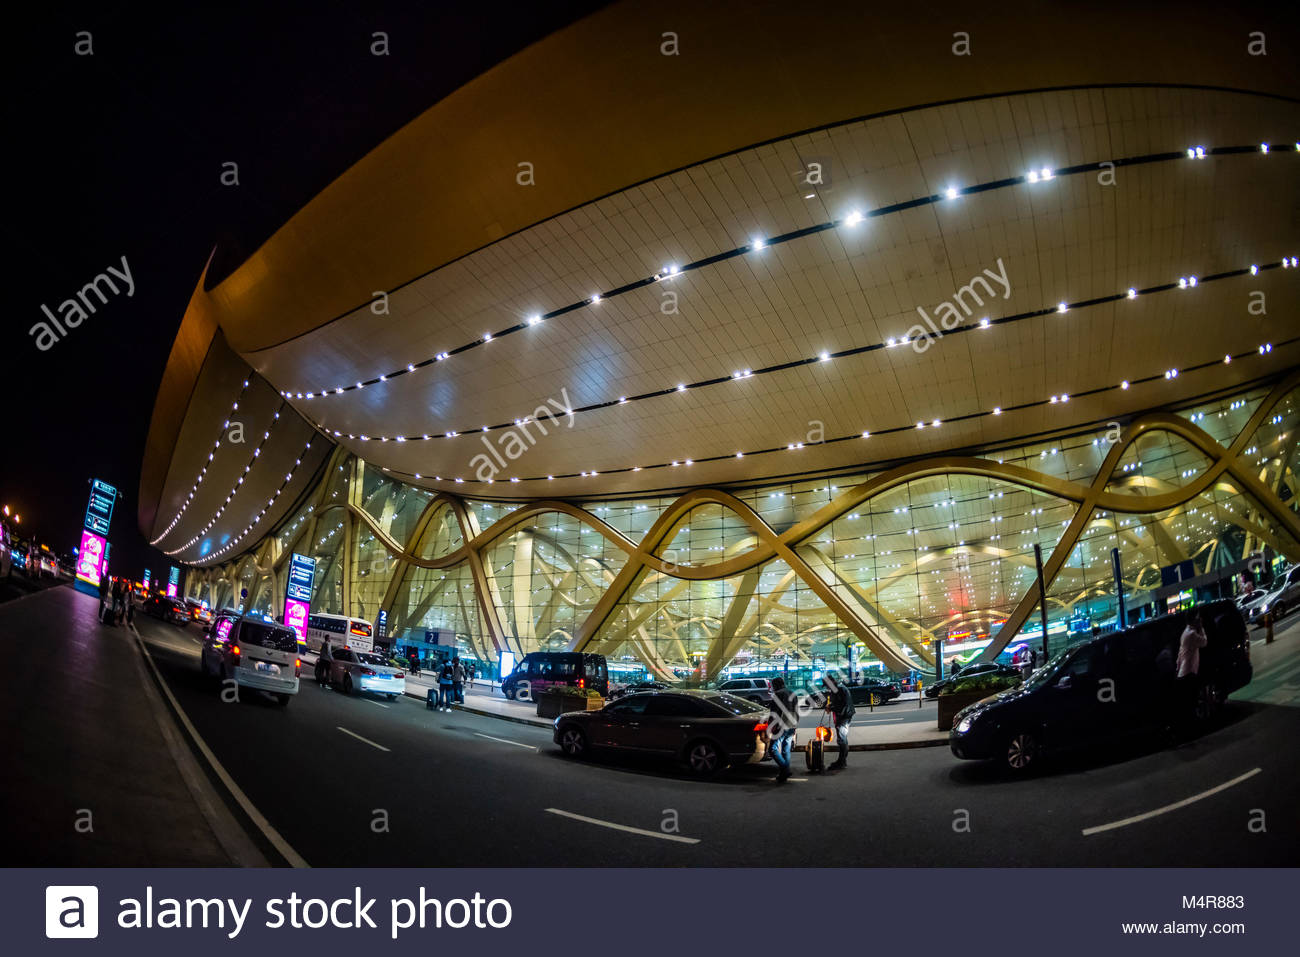 Exterior view of the Kunming Changshui International Airport, Kunming, Yunnan Province, China. - Stock Image